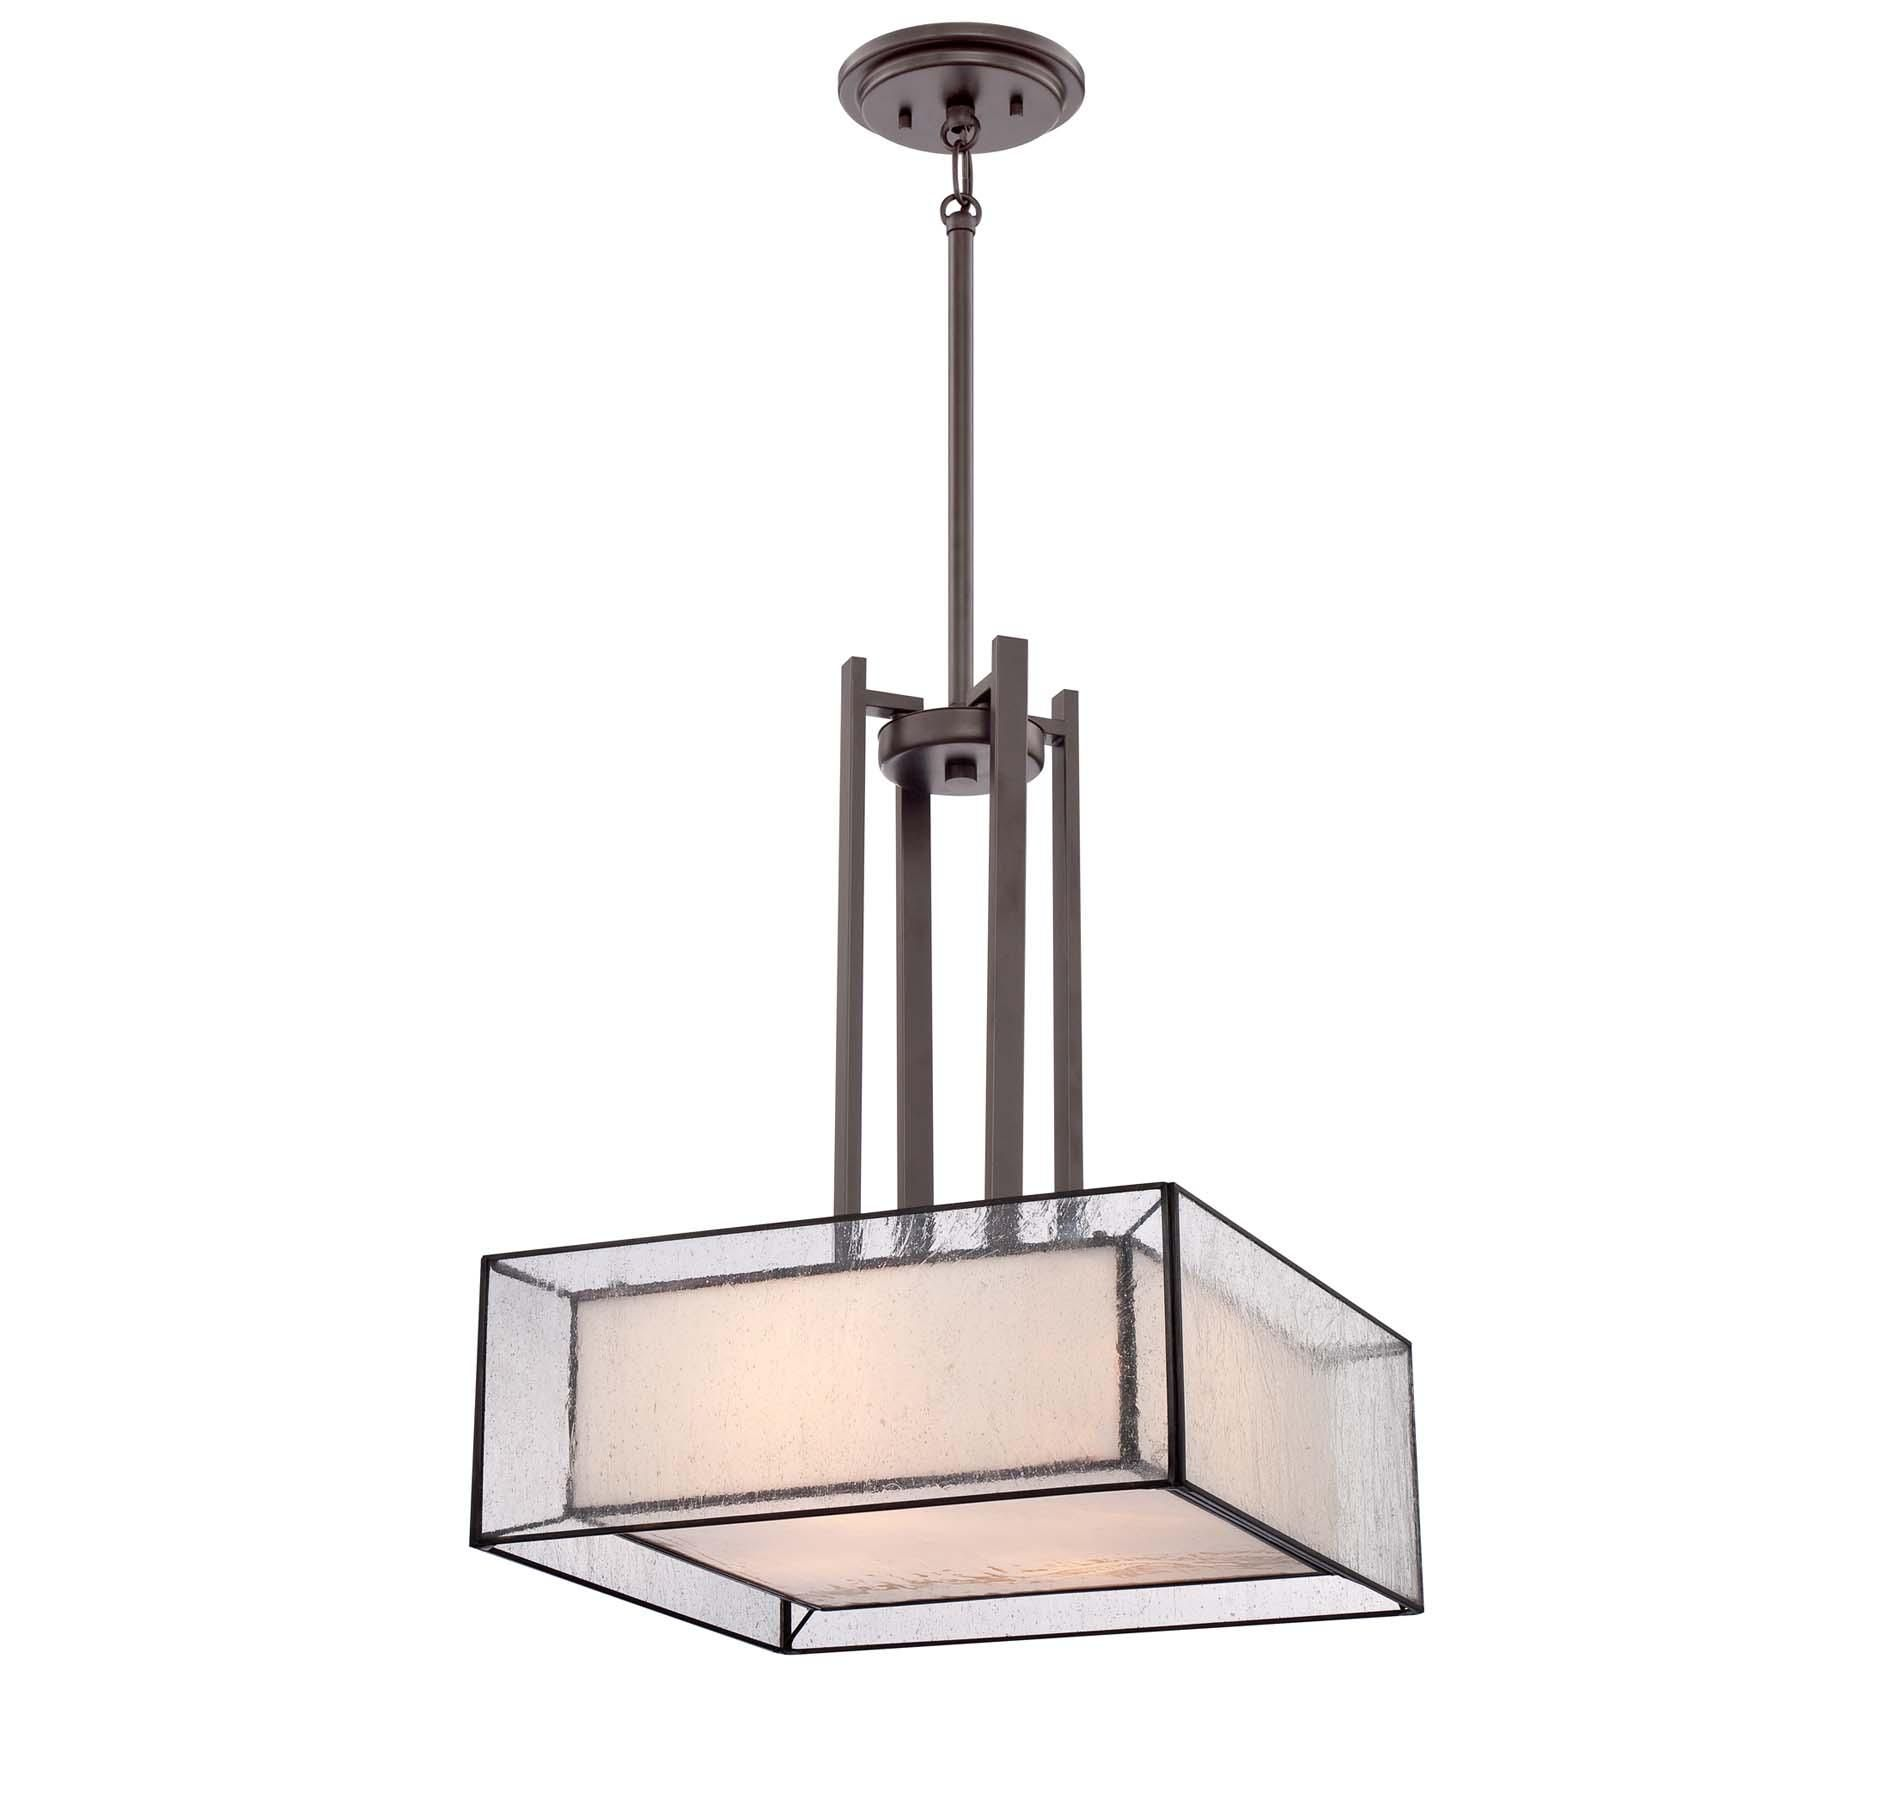 Laundry quoizel ferndale 4 light pendant in western bronze finish laundry quoizel ferndale 4 light pendant in western bronze finish in brands quoizel mozeypictures Image collections